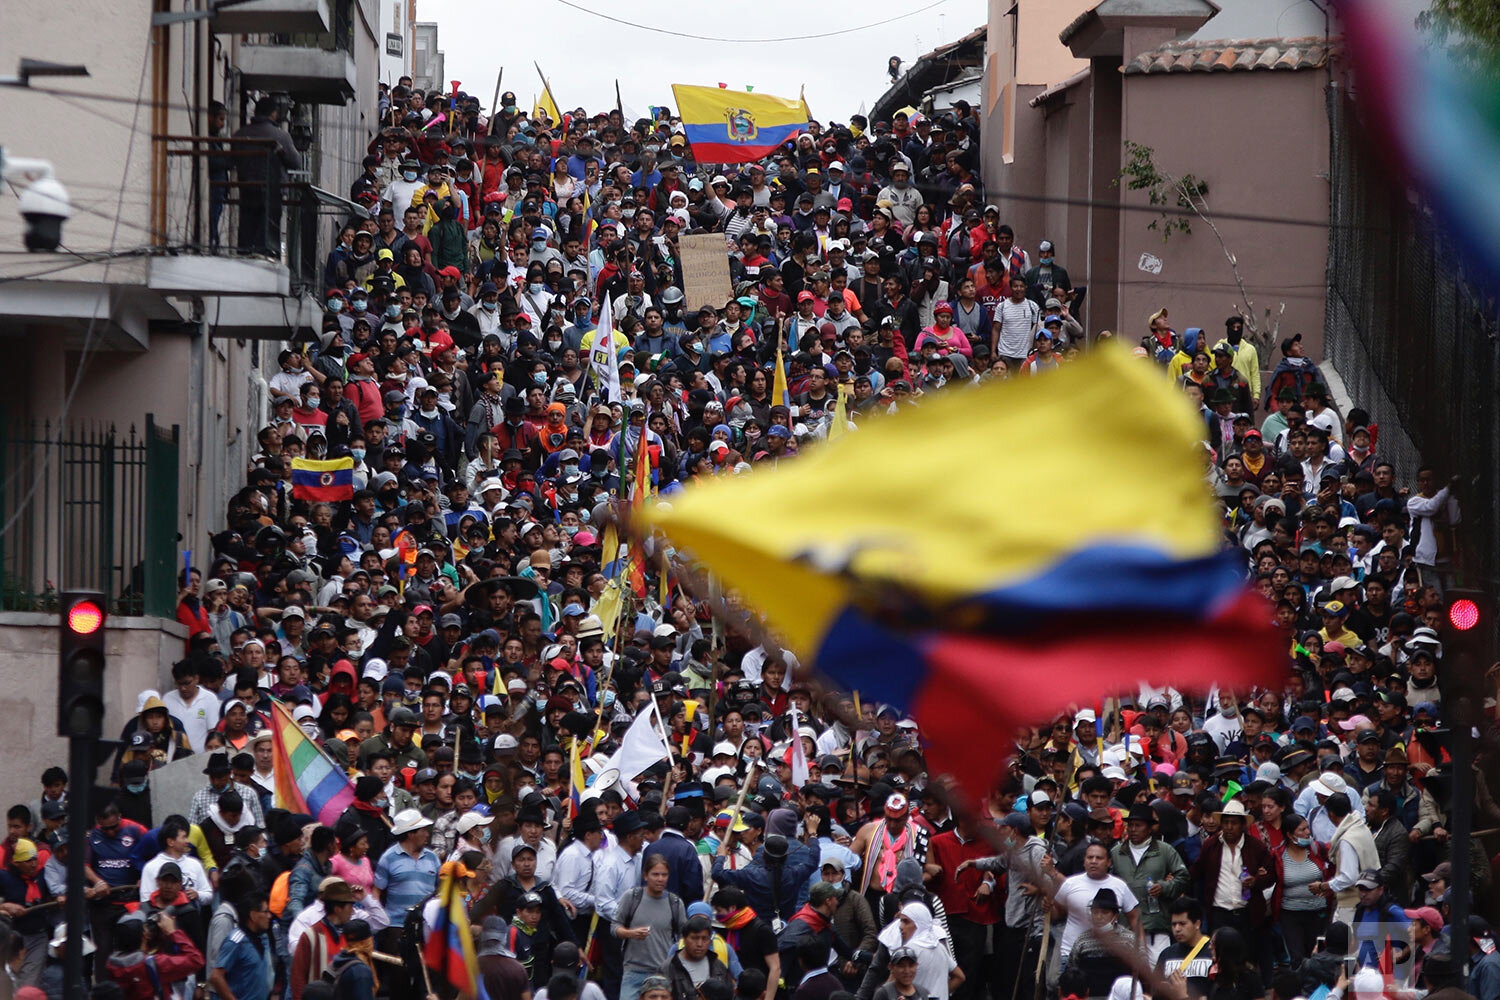 Anti-government demonstrators march against President Lenin Moreno and his economic policies during a nationwide strike, in Quito, Ecuador, Wednesday, Oct. 9, 2019. Ecuador's military has warned people who plan to participate in a national strike over fuel price hikes to avoid acts of violence. The military says it will enforce the law during the planned strike Wednesday, following days of unrest that led Moreno to move government operations from Quito to the port of Guayaquil. (AP Photo/Carlos Noriega)